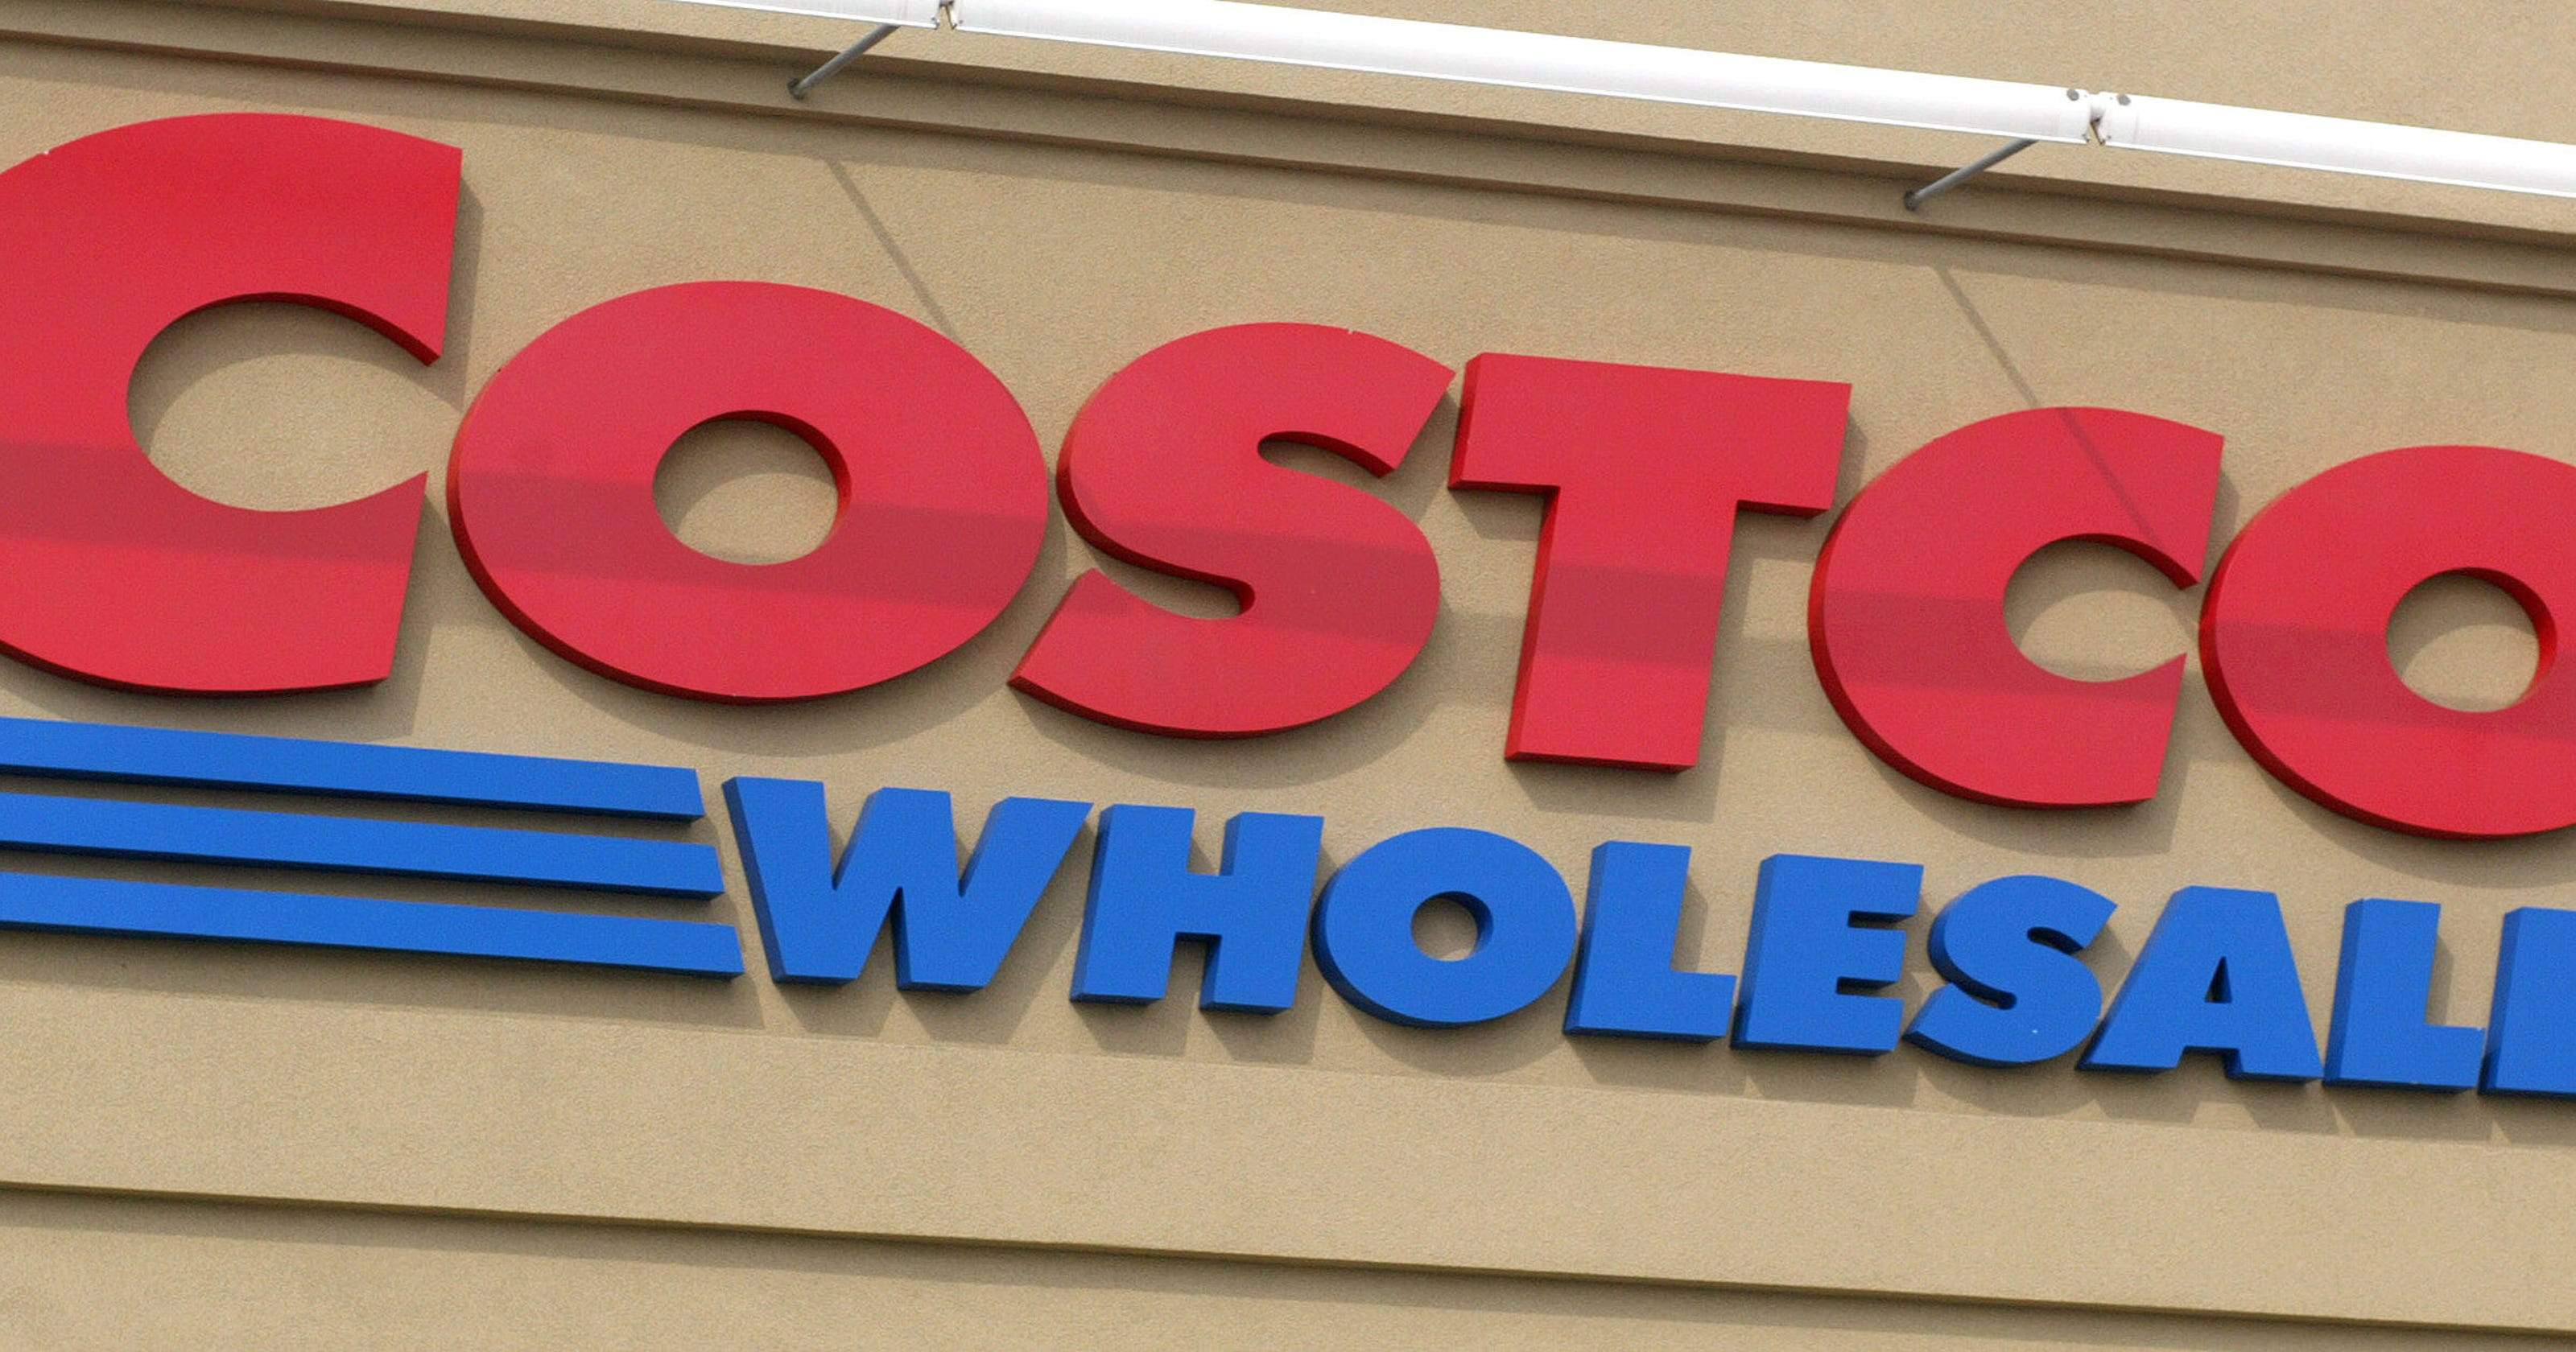 705ce92cc58a1 Judge: Costco must pay Tiffany $19.4 million for advertising knock-off rings